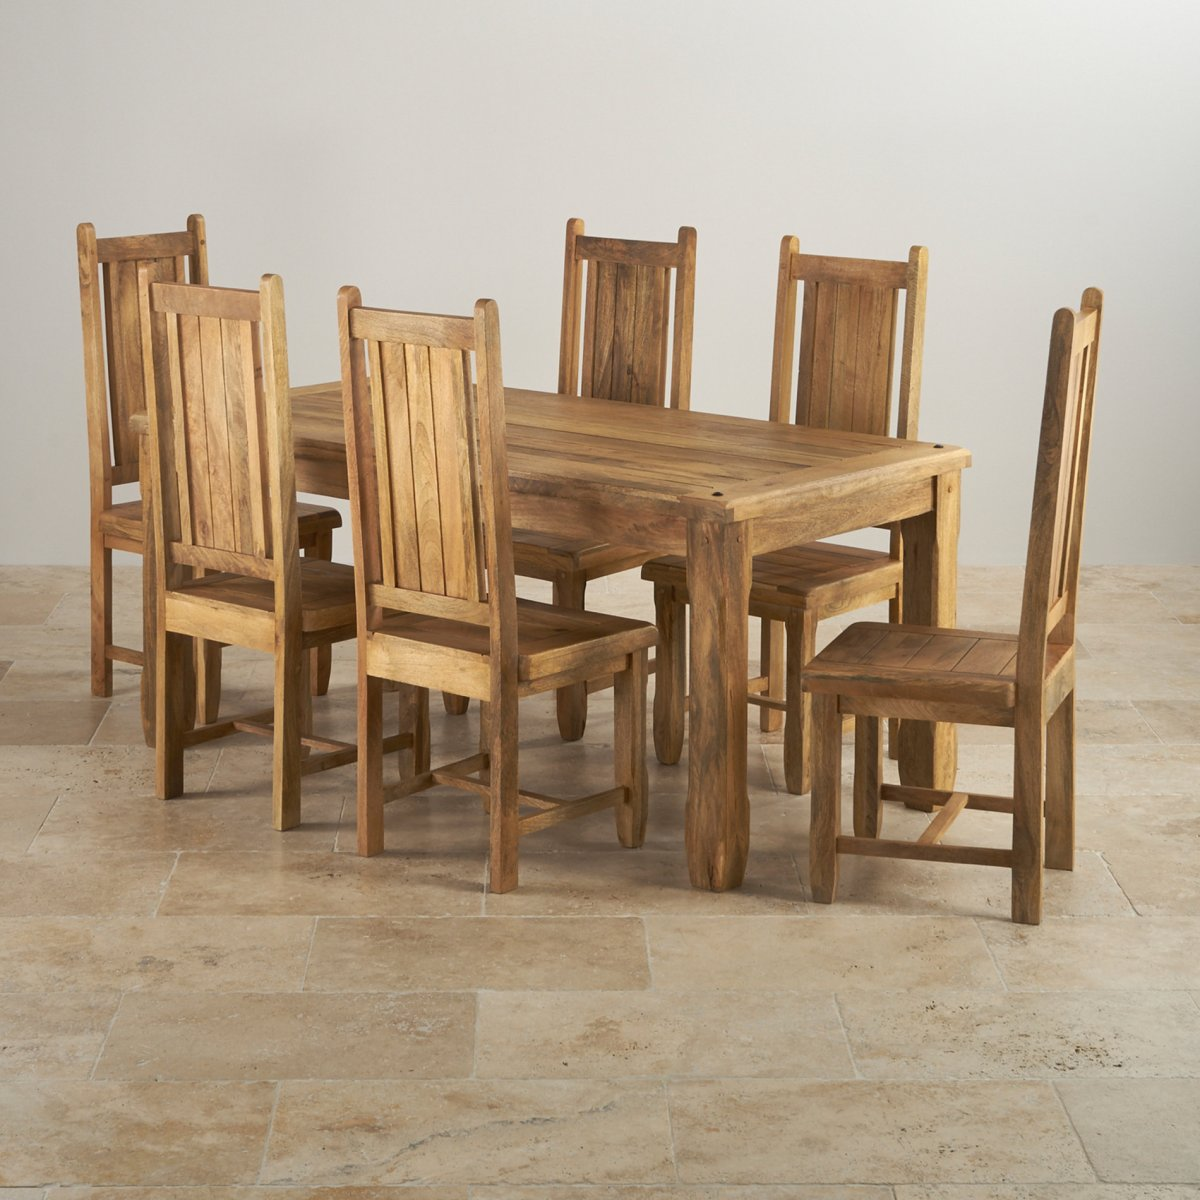 Baku light dining table in natural mango 6 mango chairs for Wooden dining table chairs